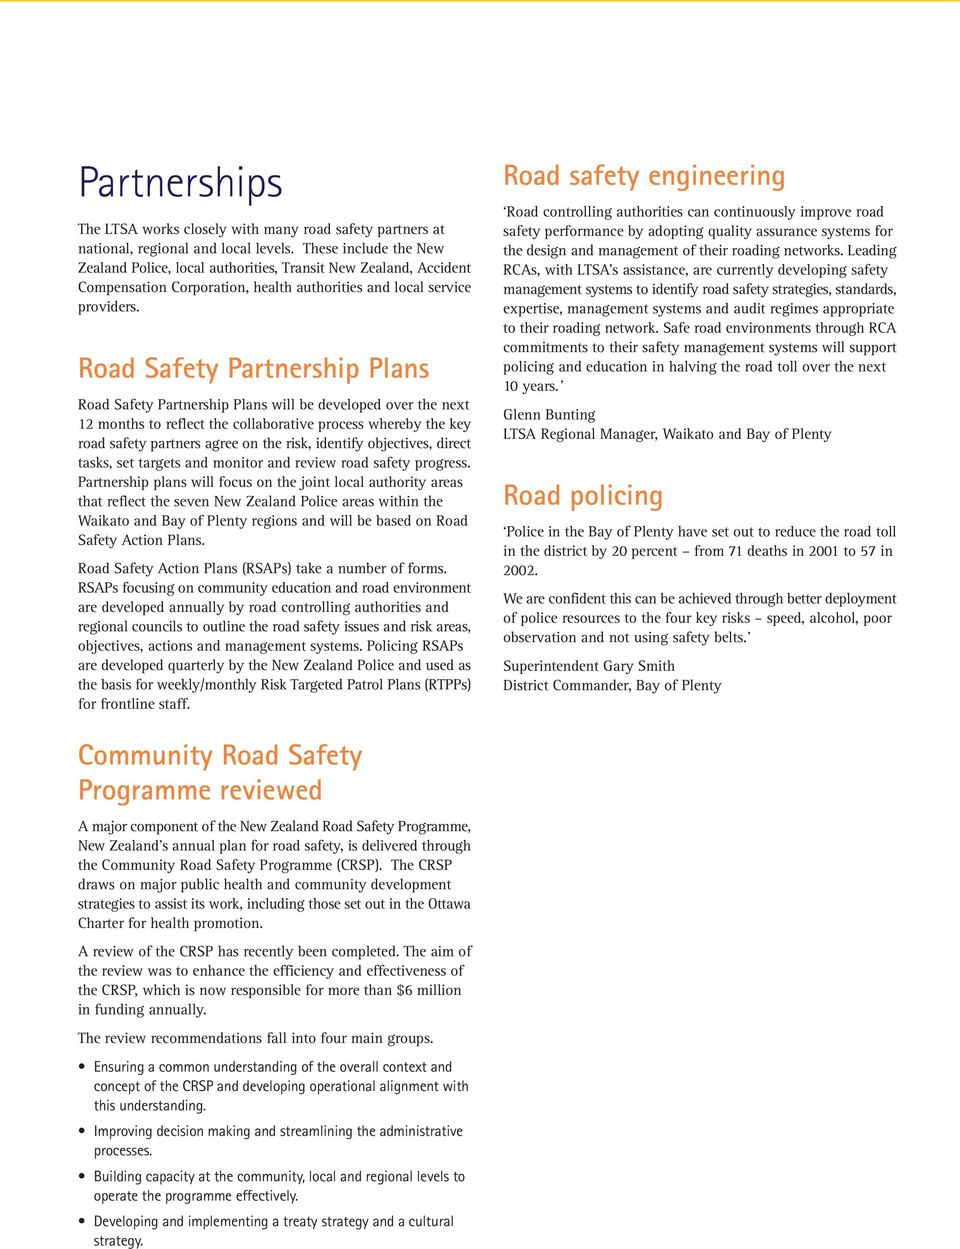 Road Safety Partnership Plans Road Safety Partnership Plans will be developed over the next 12 months to reflect the collaborative process whereby the key road safety partners agree on the risk,